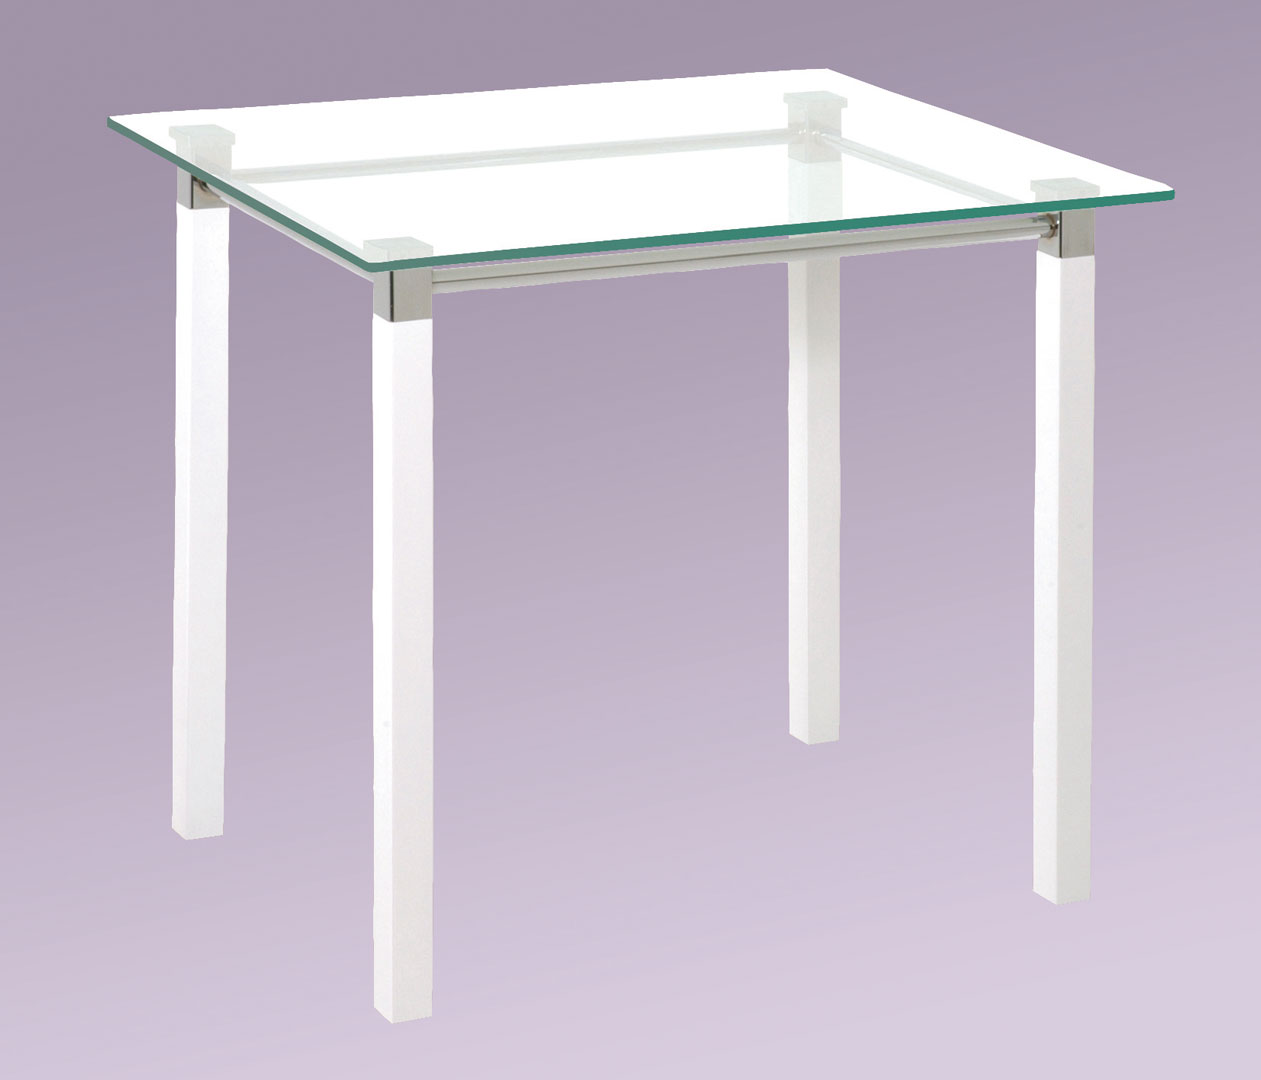 Table Appoint Verre Table D Appoint Rectangulaire En Verre Timor Ii